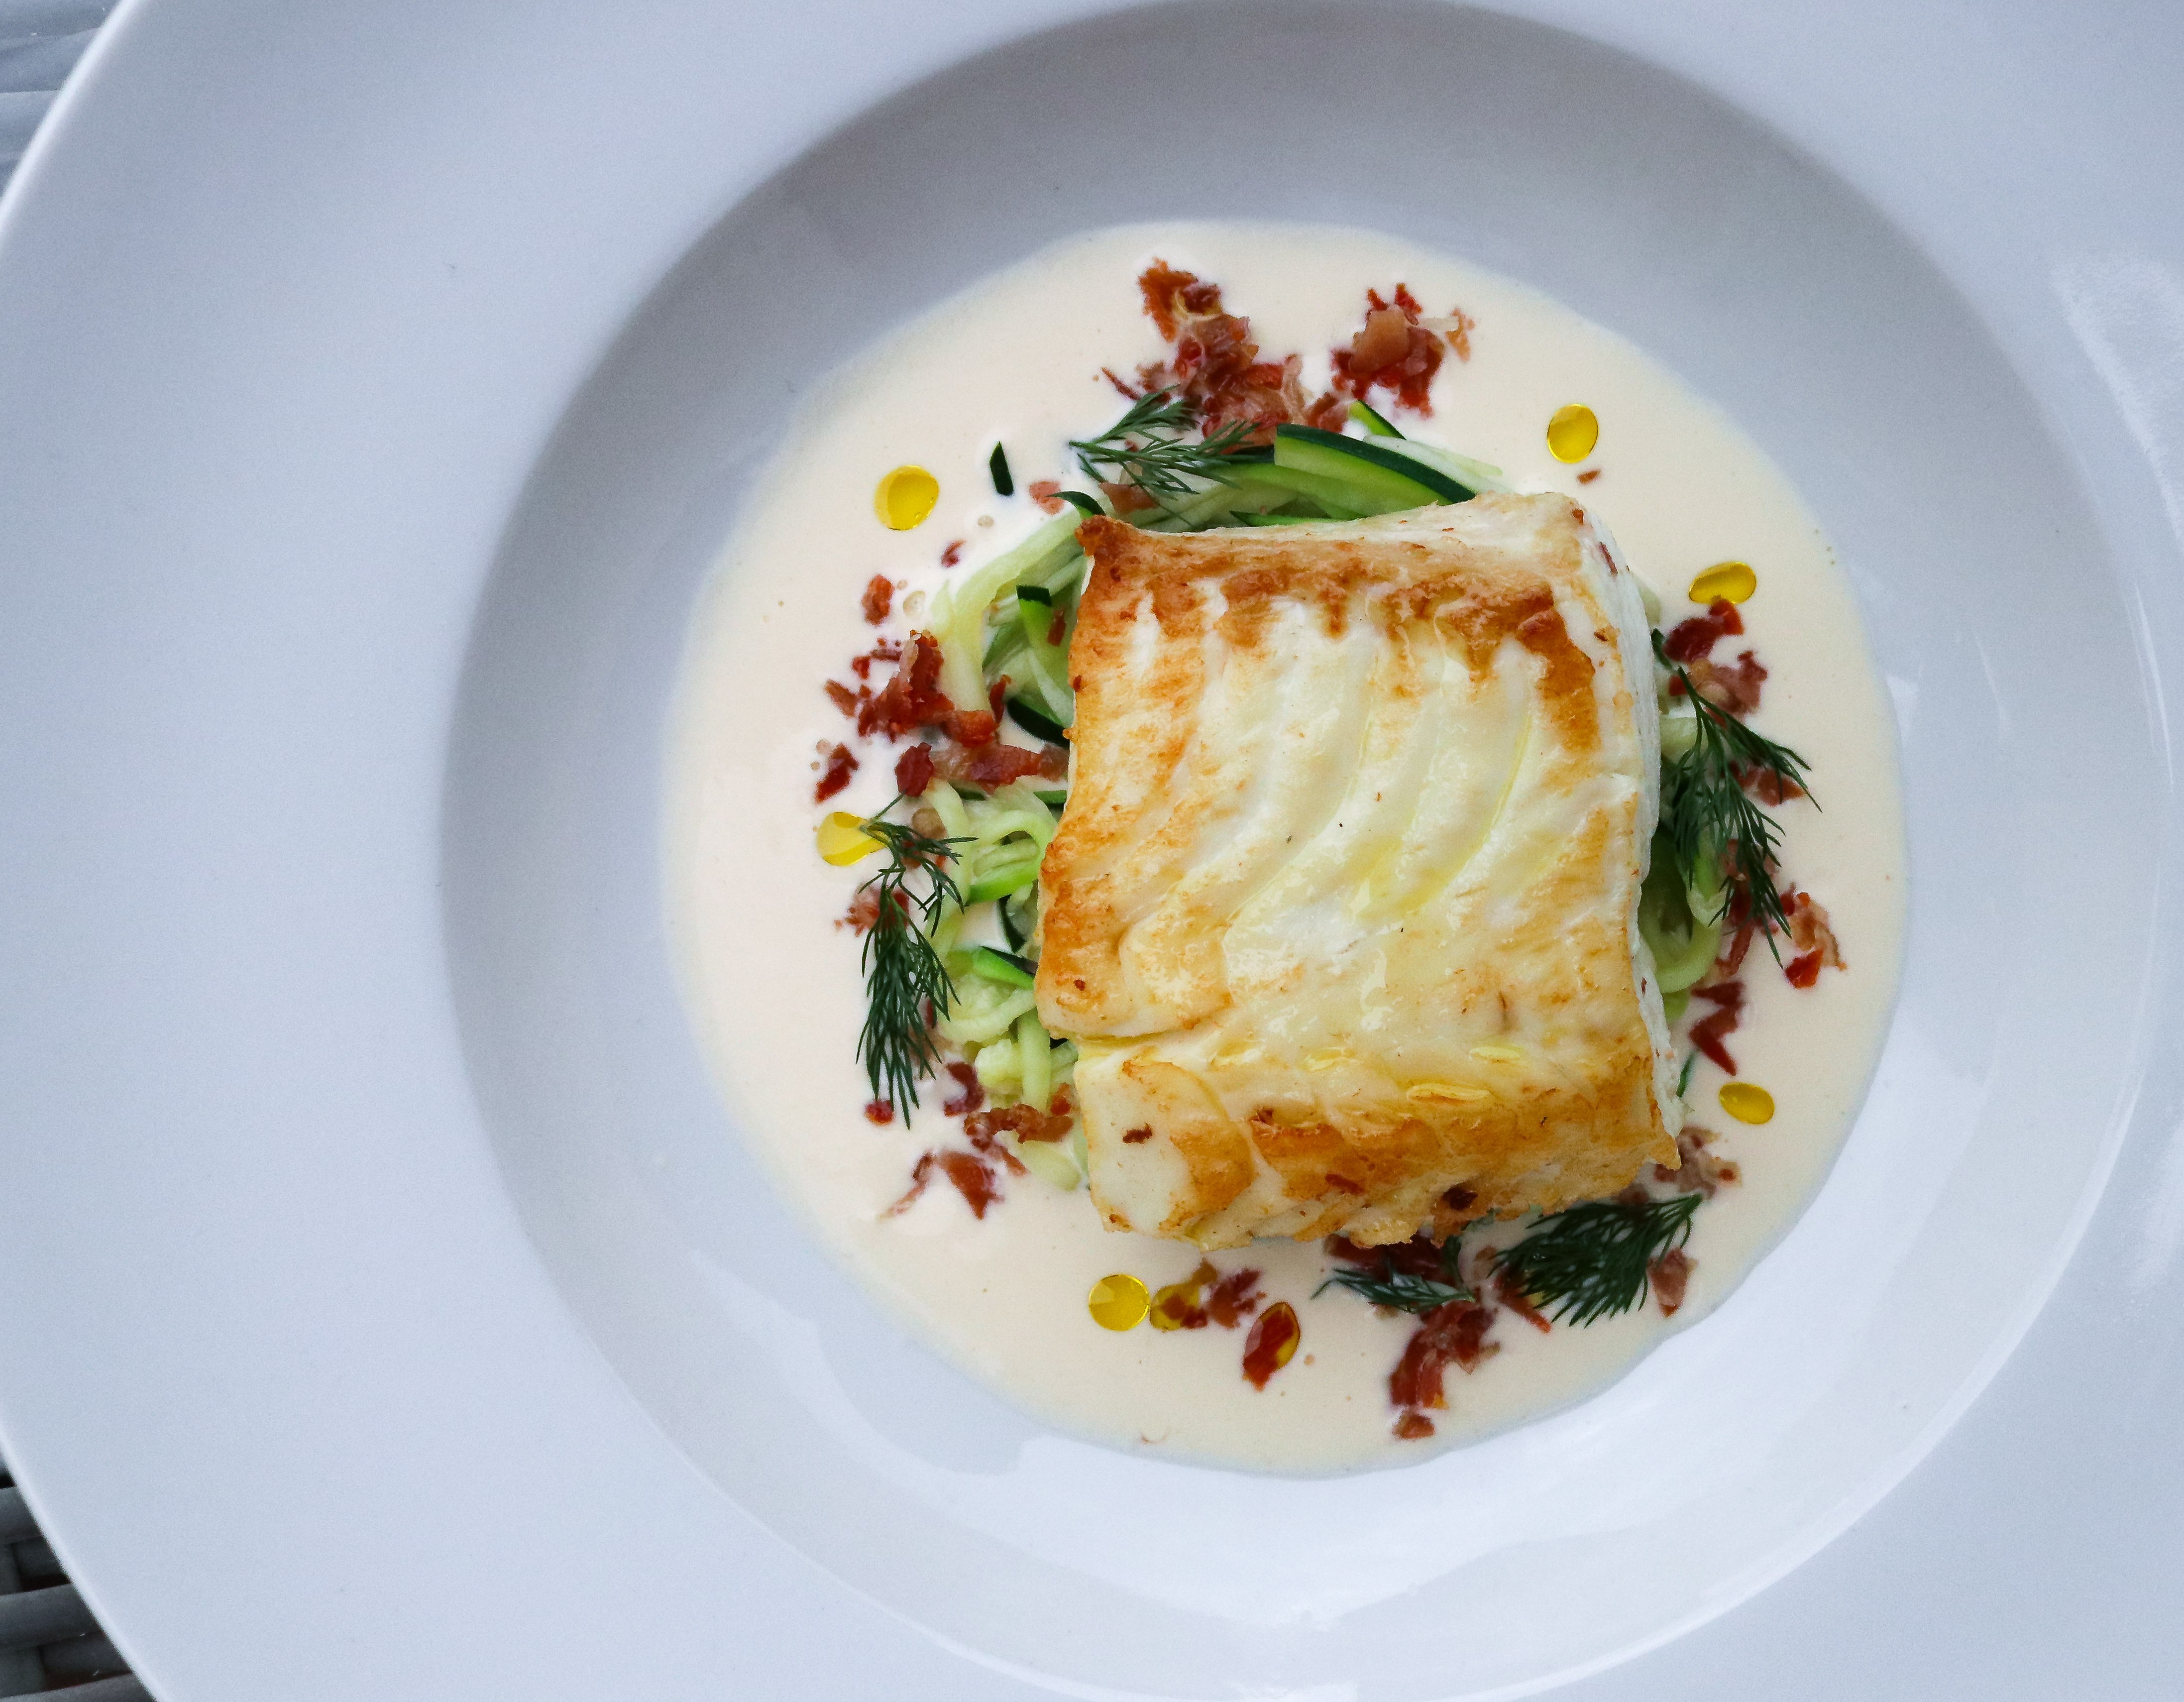 Halibut with Courgette and Serrano in a Lemon and Dill Cream Sauce